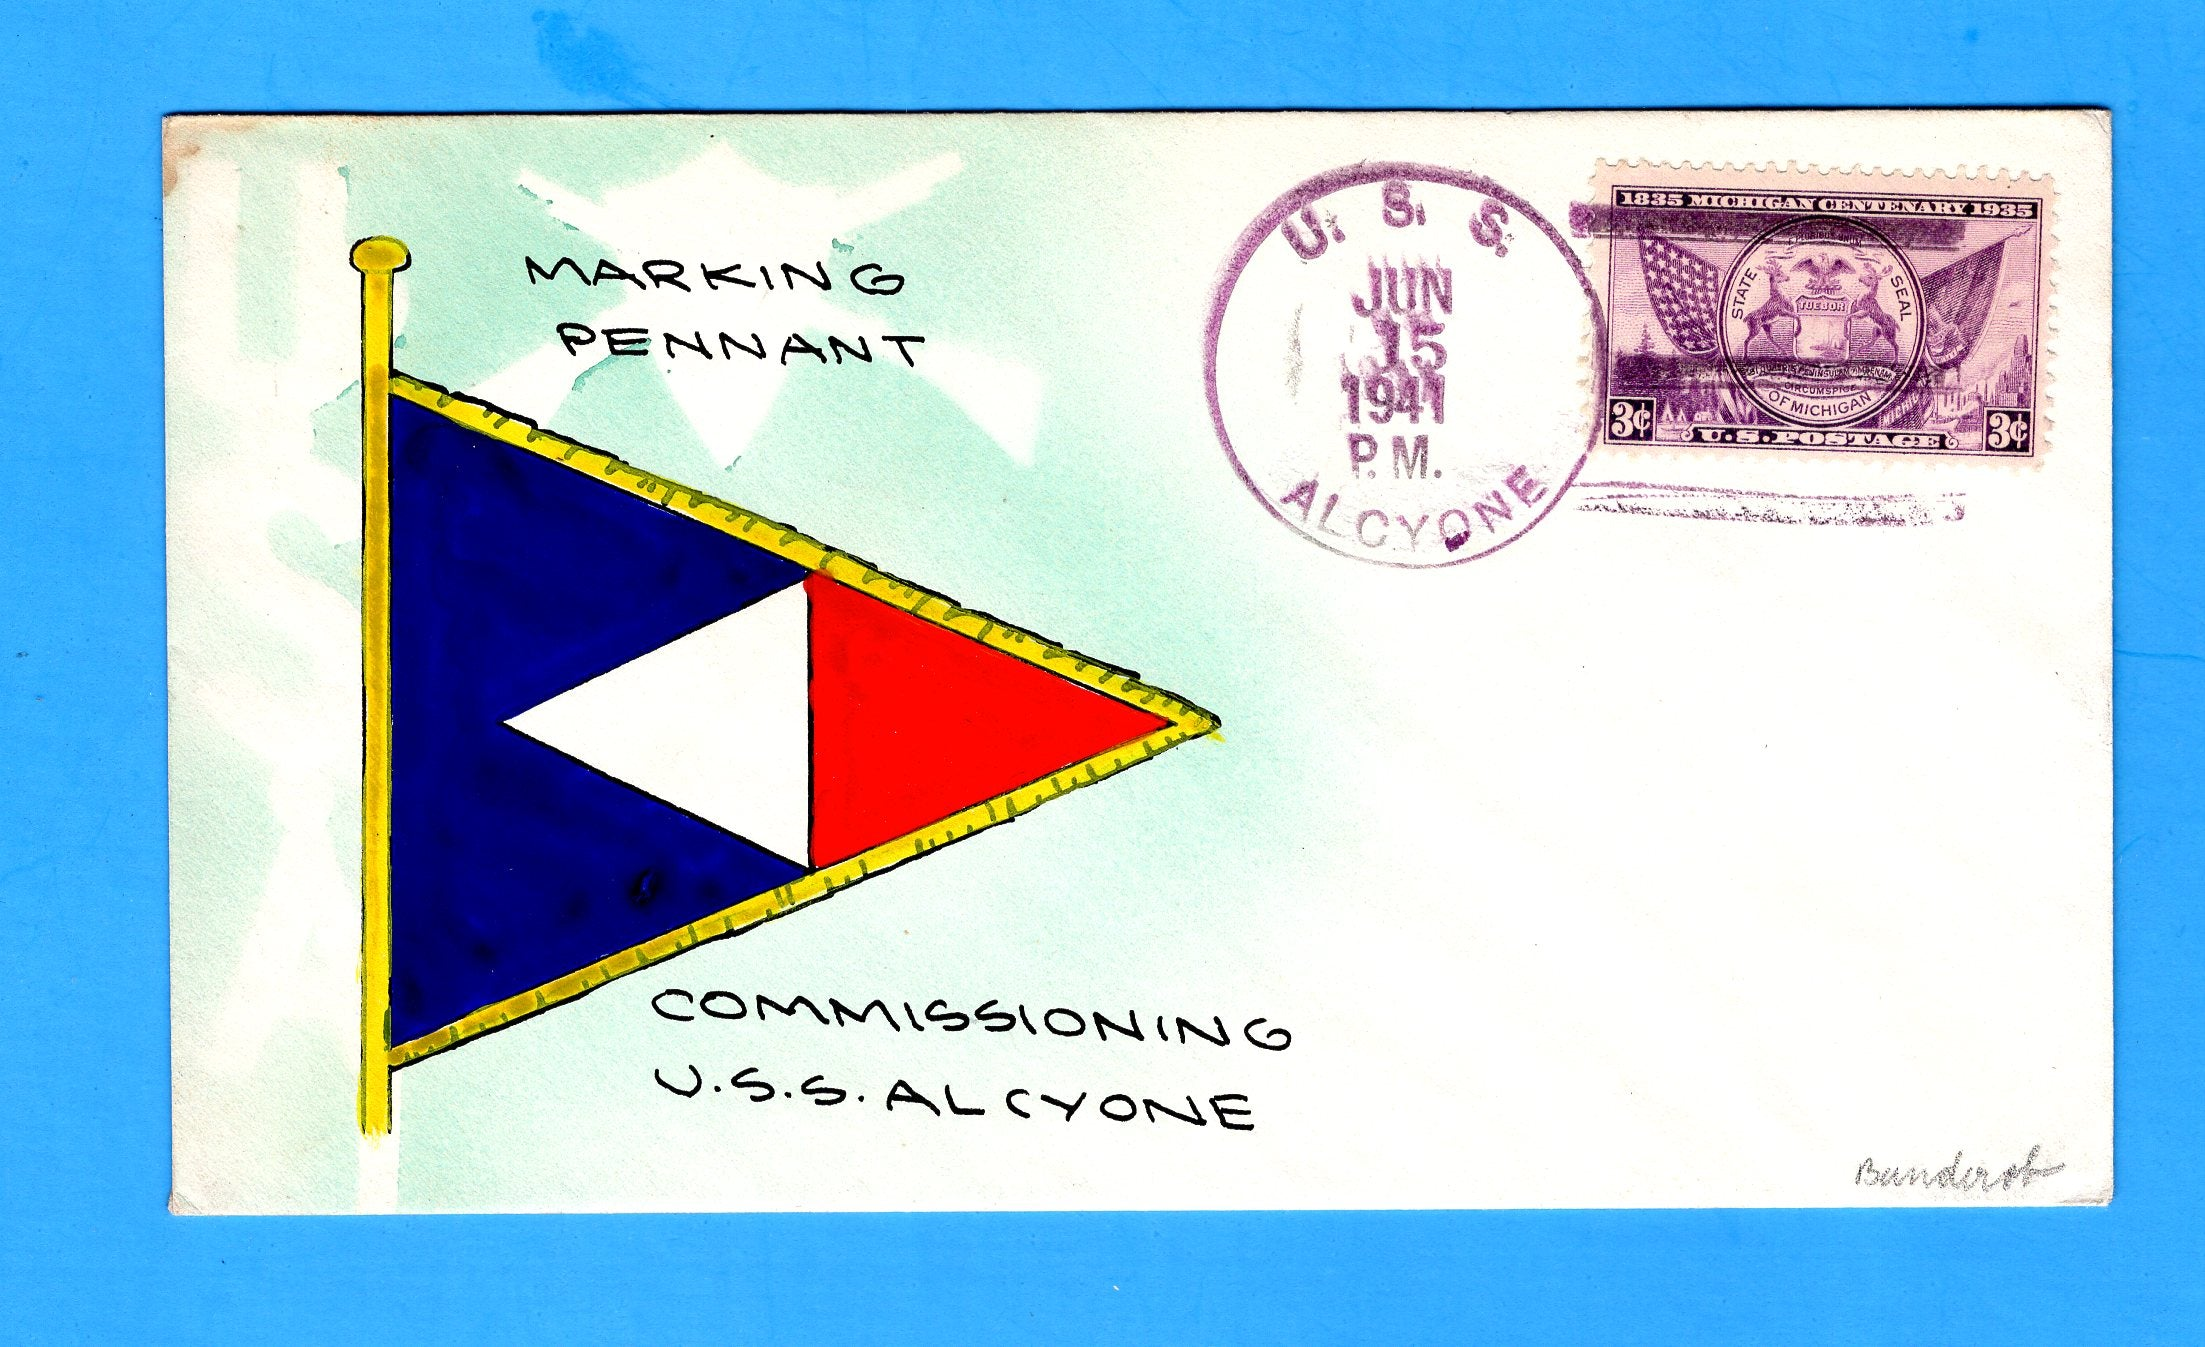 USS Alcyone AKA-7 Commissioned June 15, 1941 - Mae Weigand Hand Painted Cachet